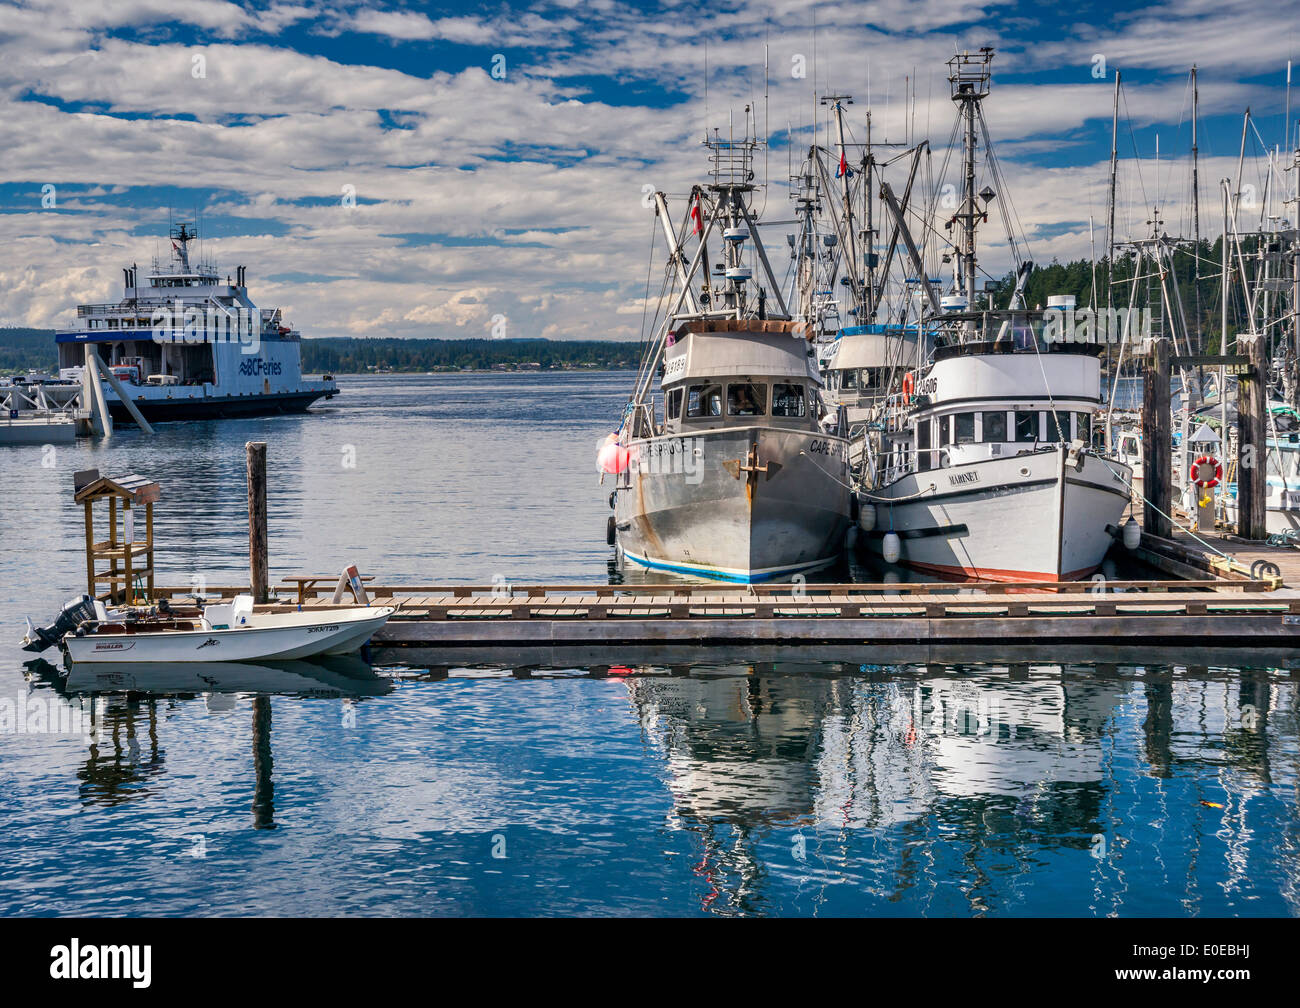 Fishing boats at marina, ferry in dist, going to Campbell River from Quathiaski Cove on Quadra Island, British Columbia, Stock Photo